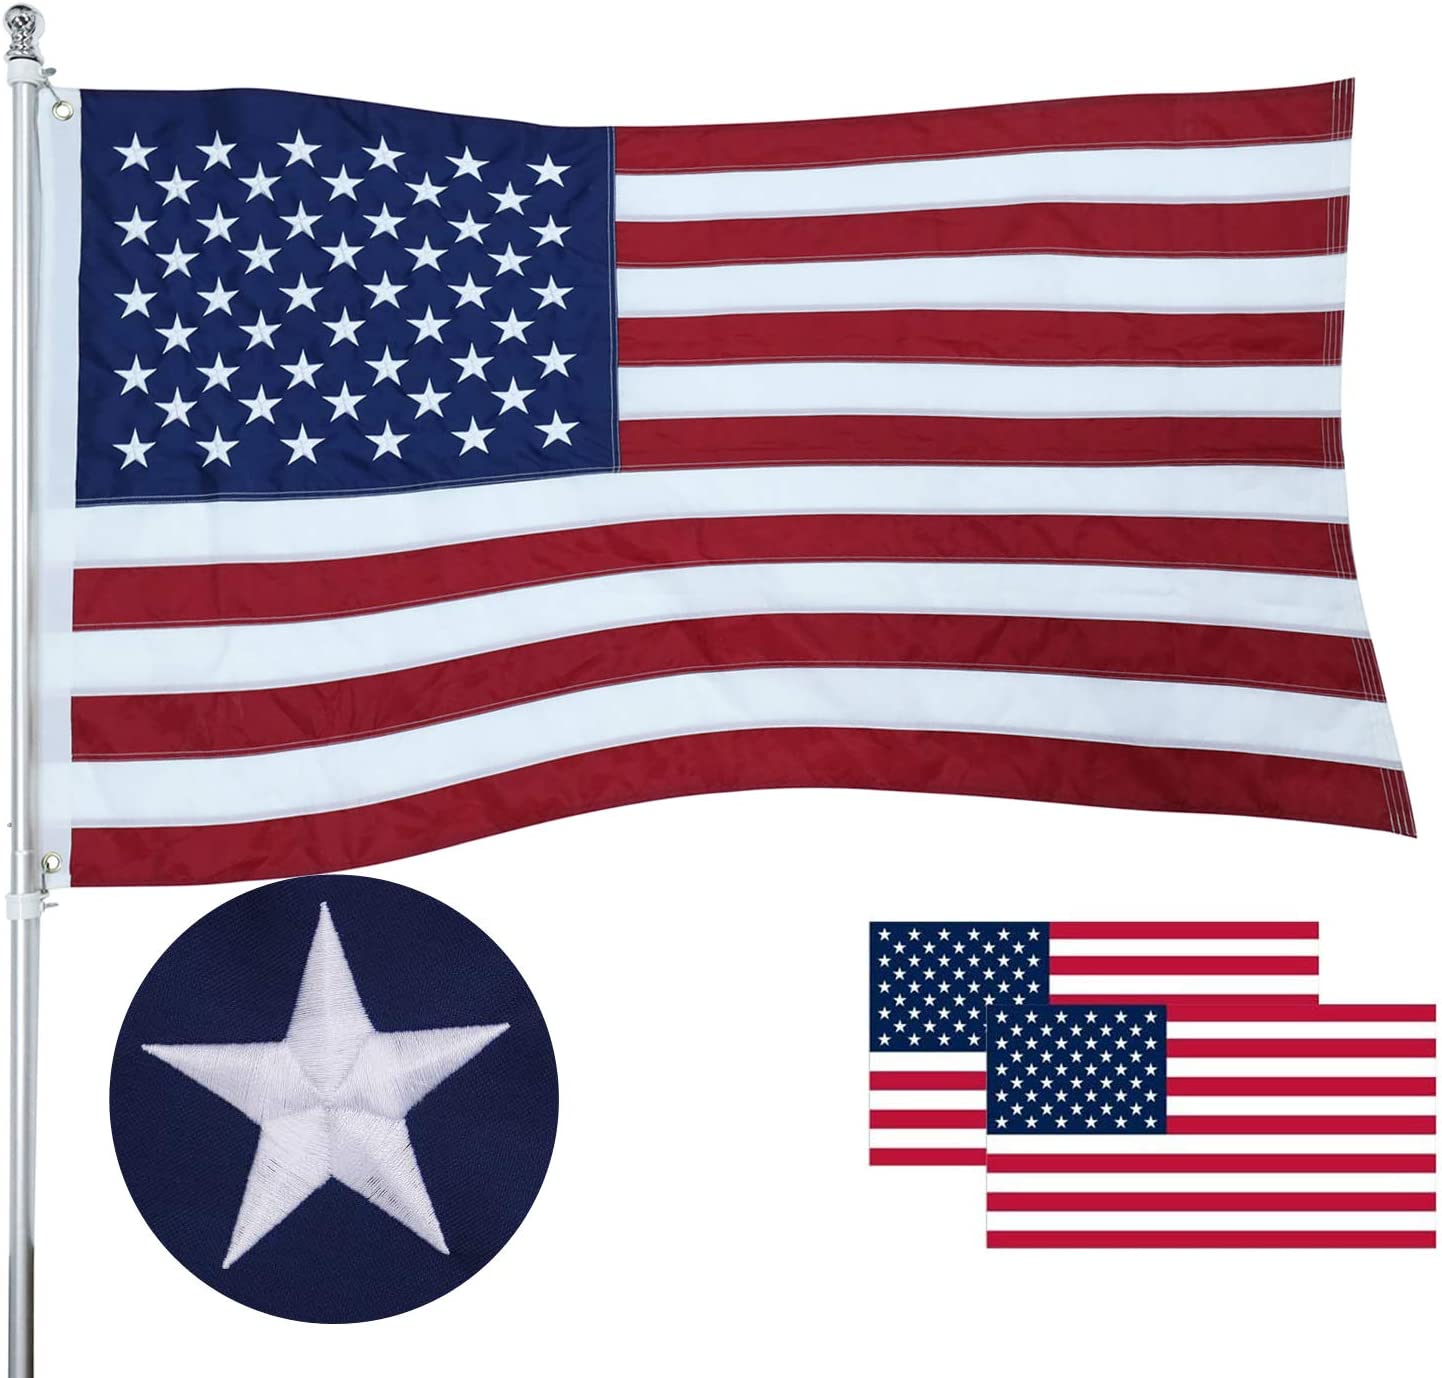 Heavy Duty Long Lasting Tough Polyester US Flag with Sewn Strips